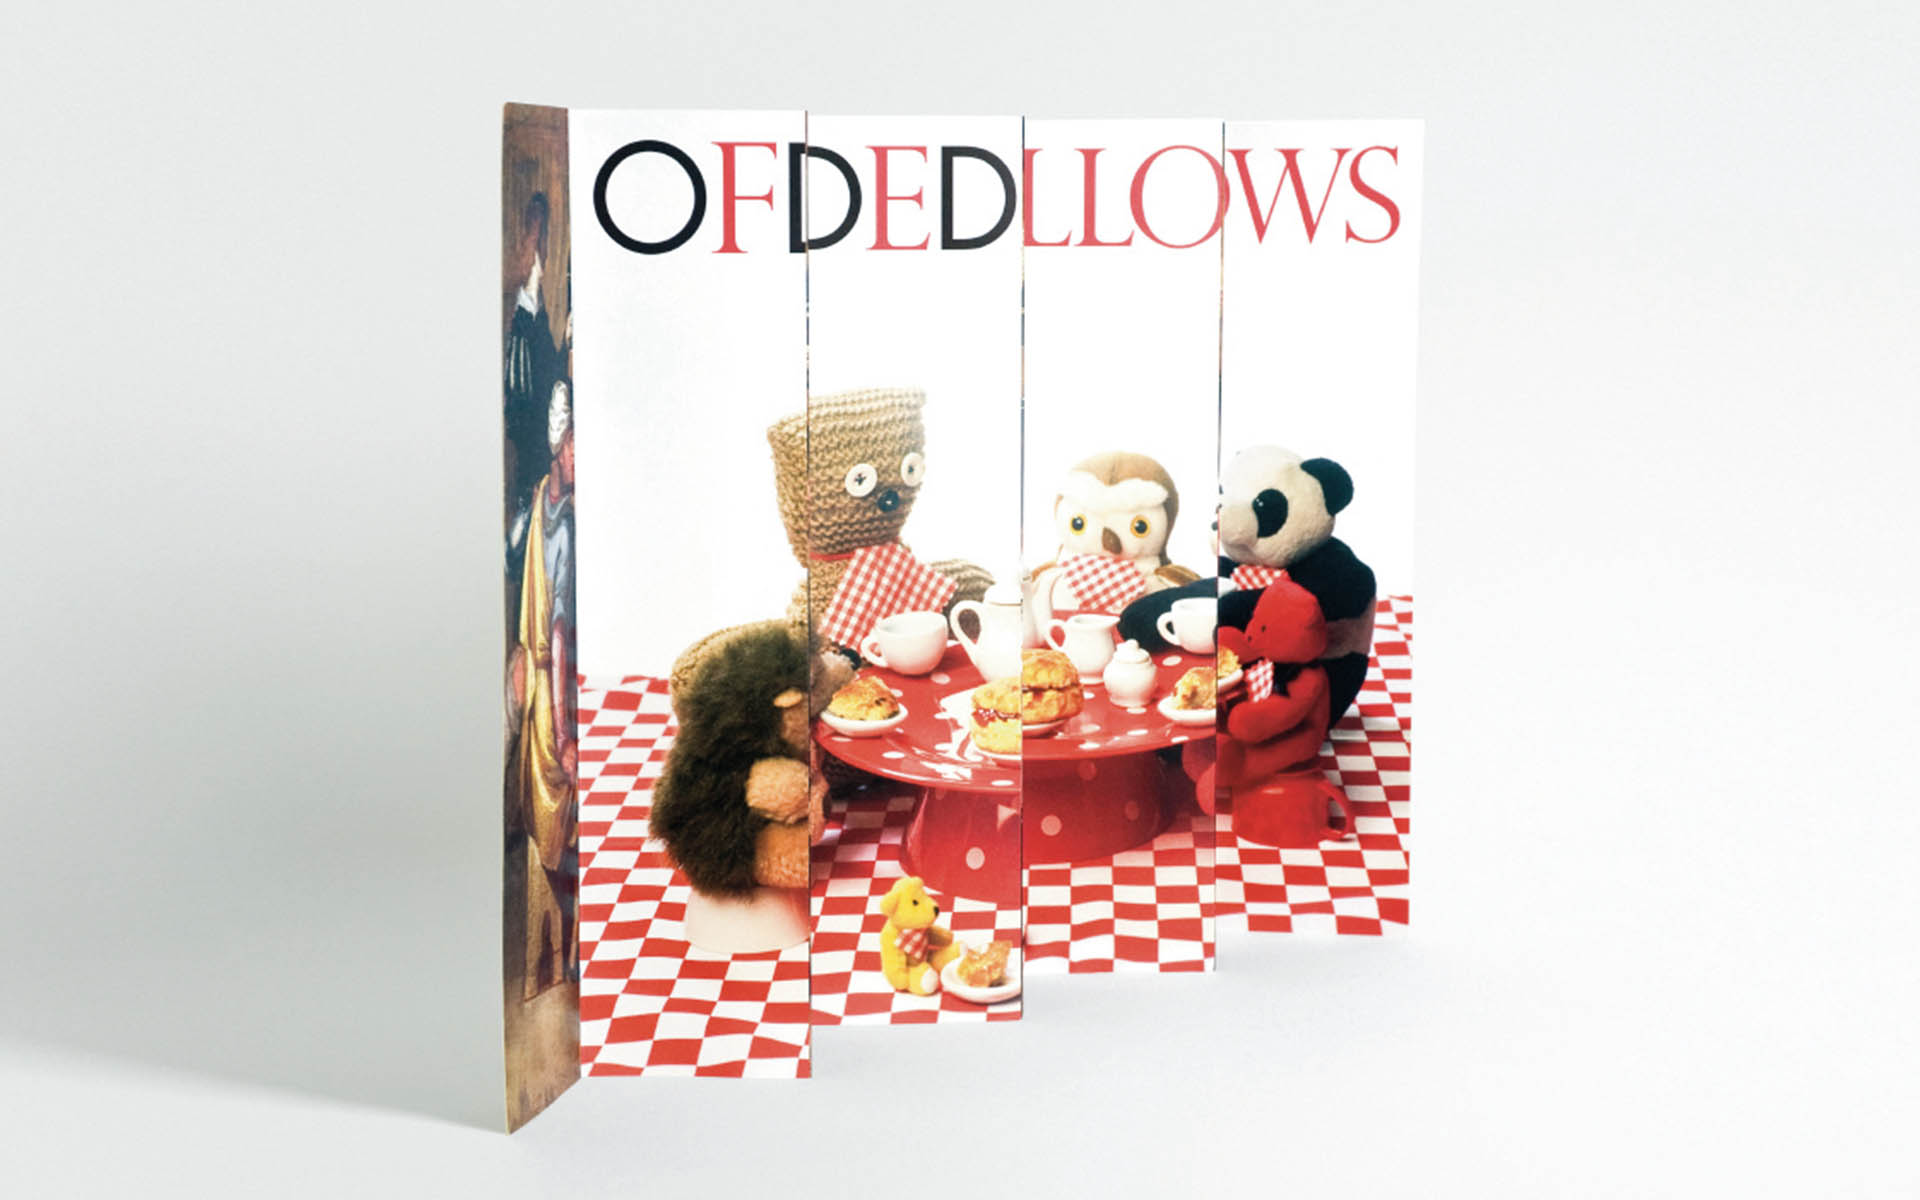 Oddfellows members invitation closed